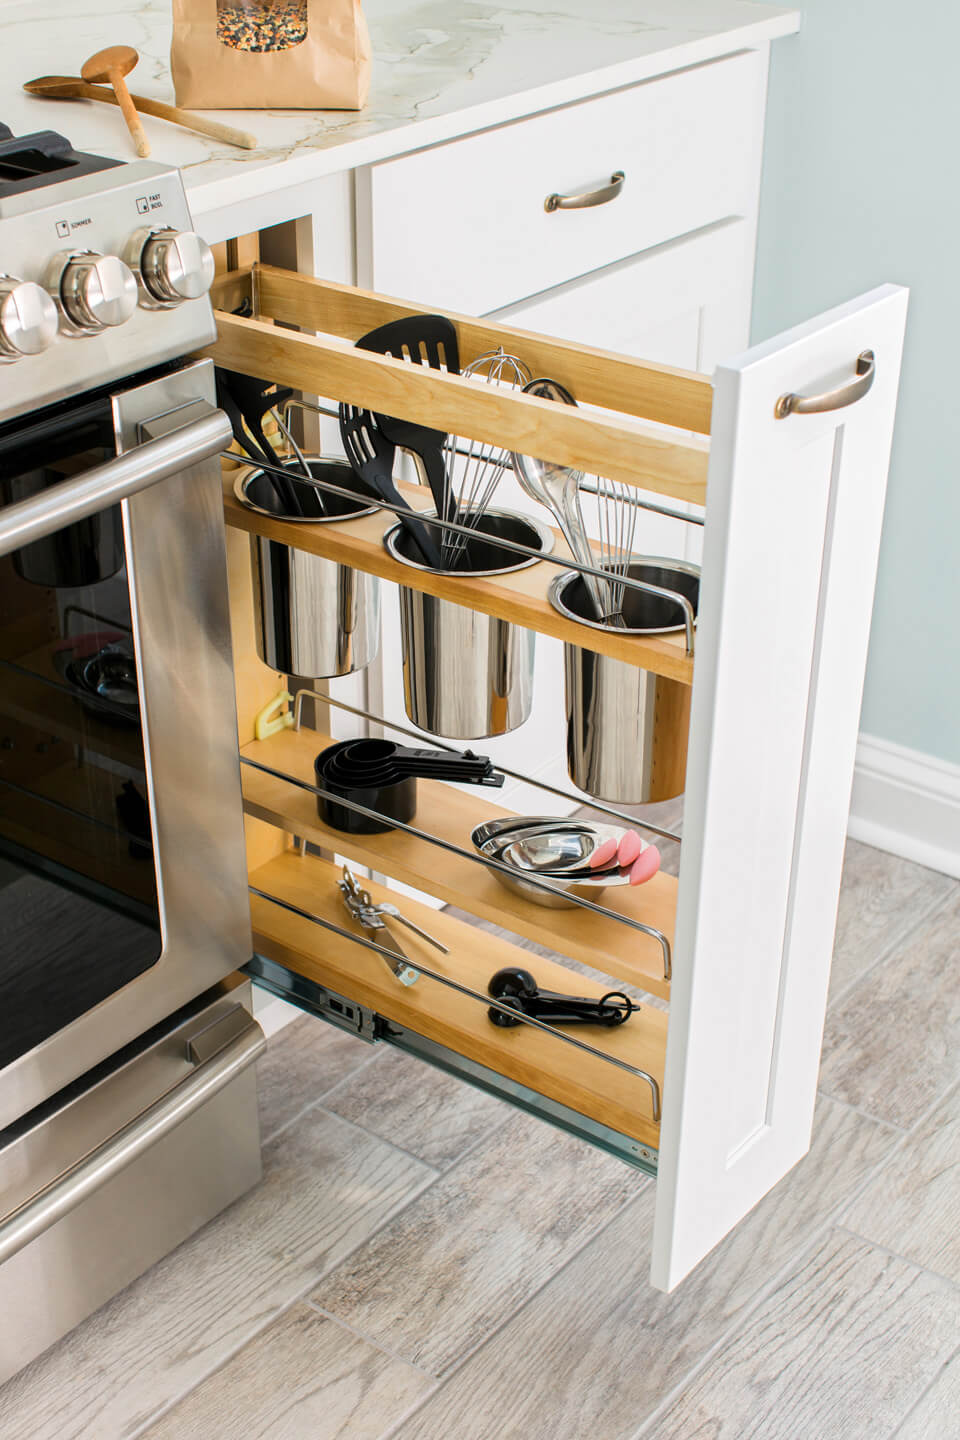 6 Utensil Drawers In Unused Cabinet E